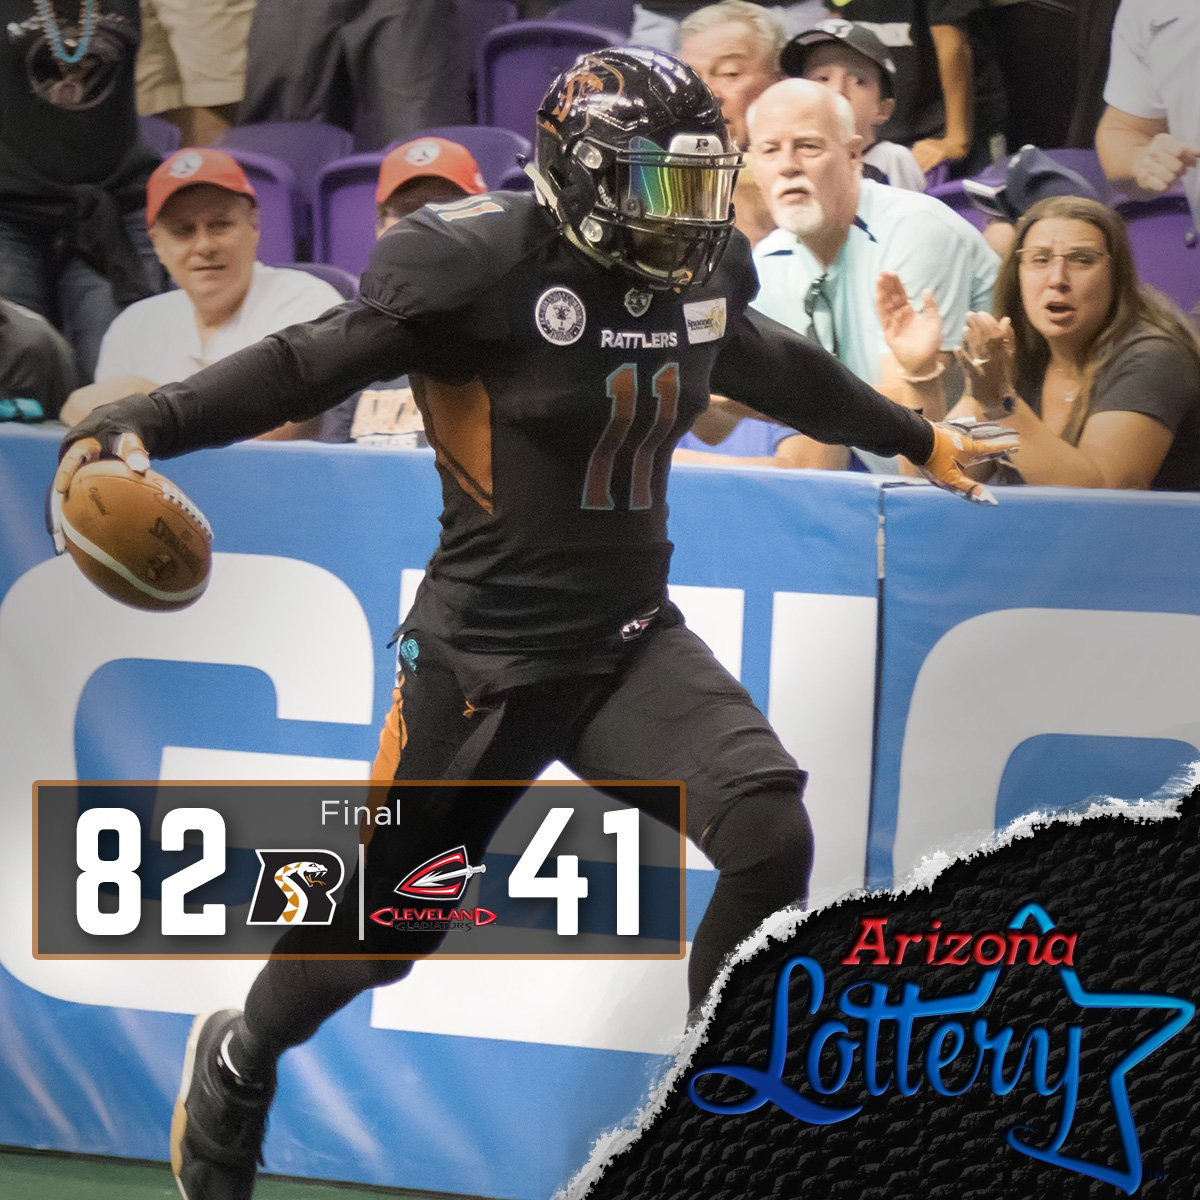 Rattlers punch their ticket to the 2016 Arena Bowl with a convincing 82-41 win, brought to you by @AZLottery https://t.co/QMtoFNW4vK